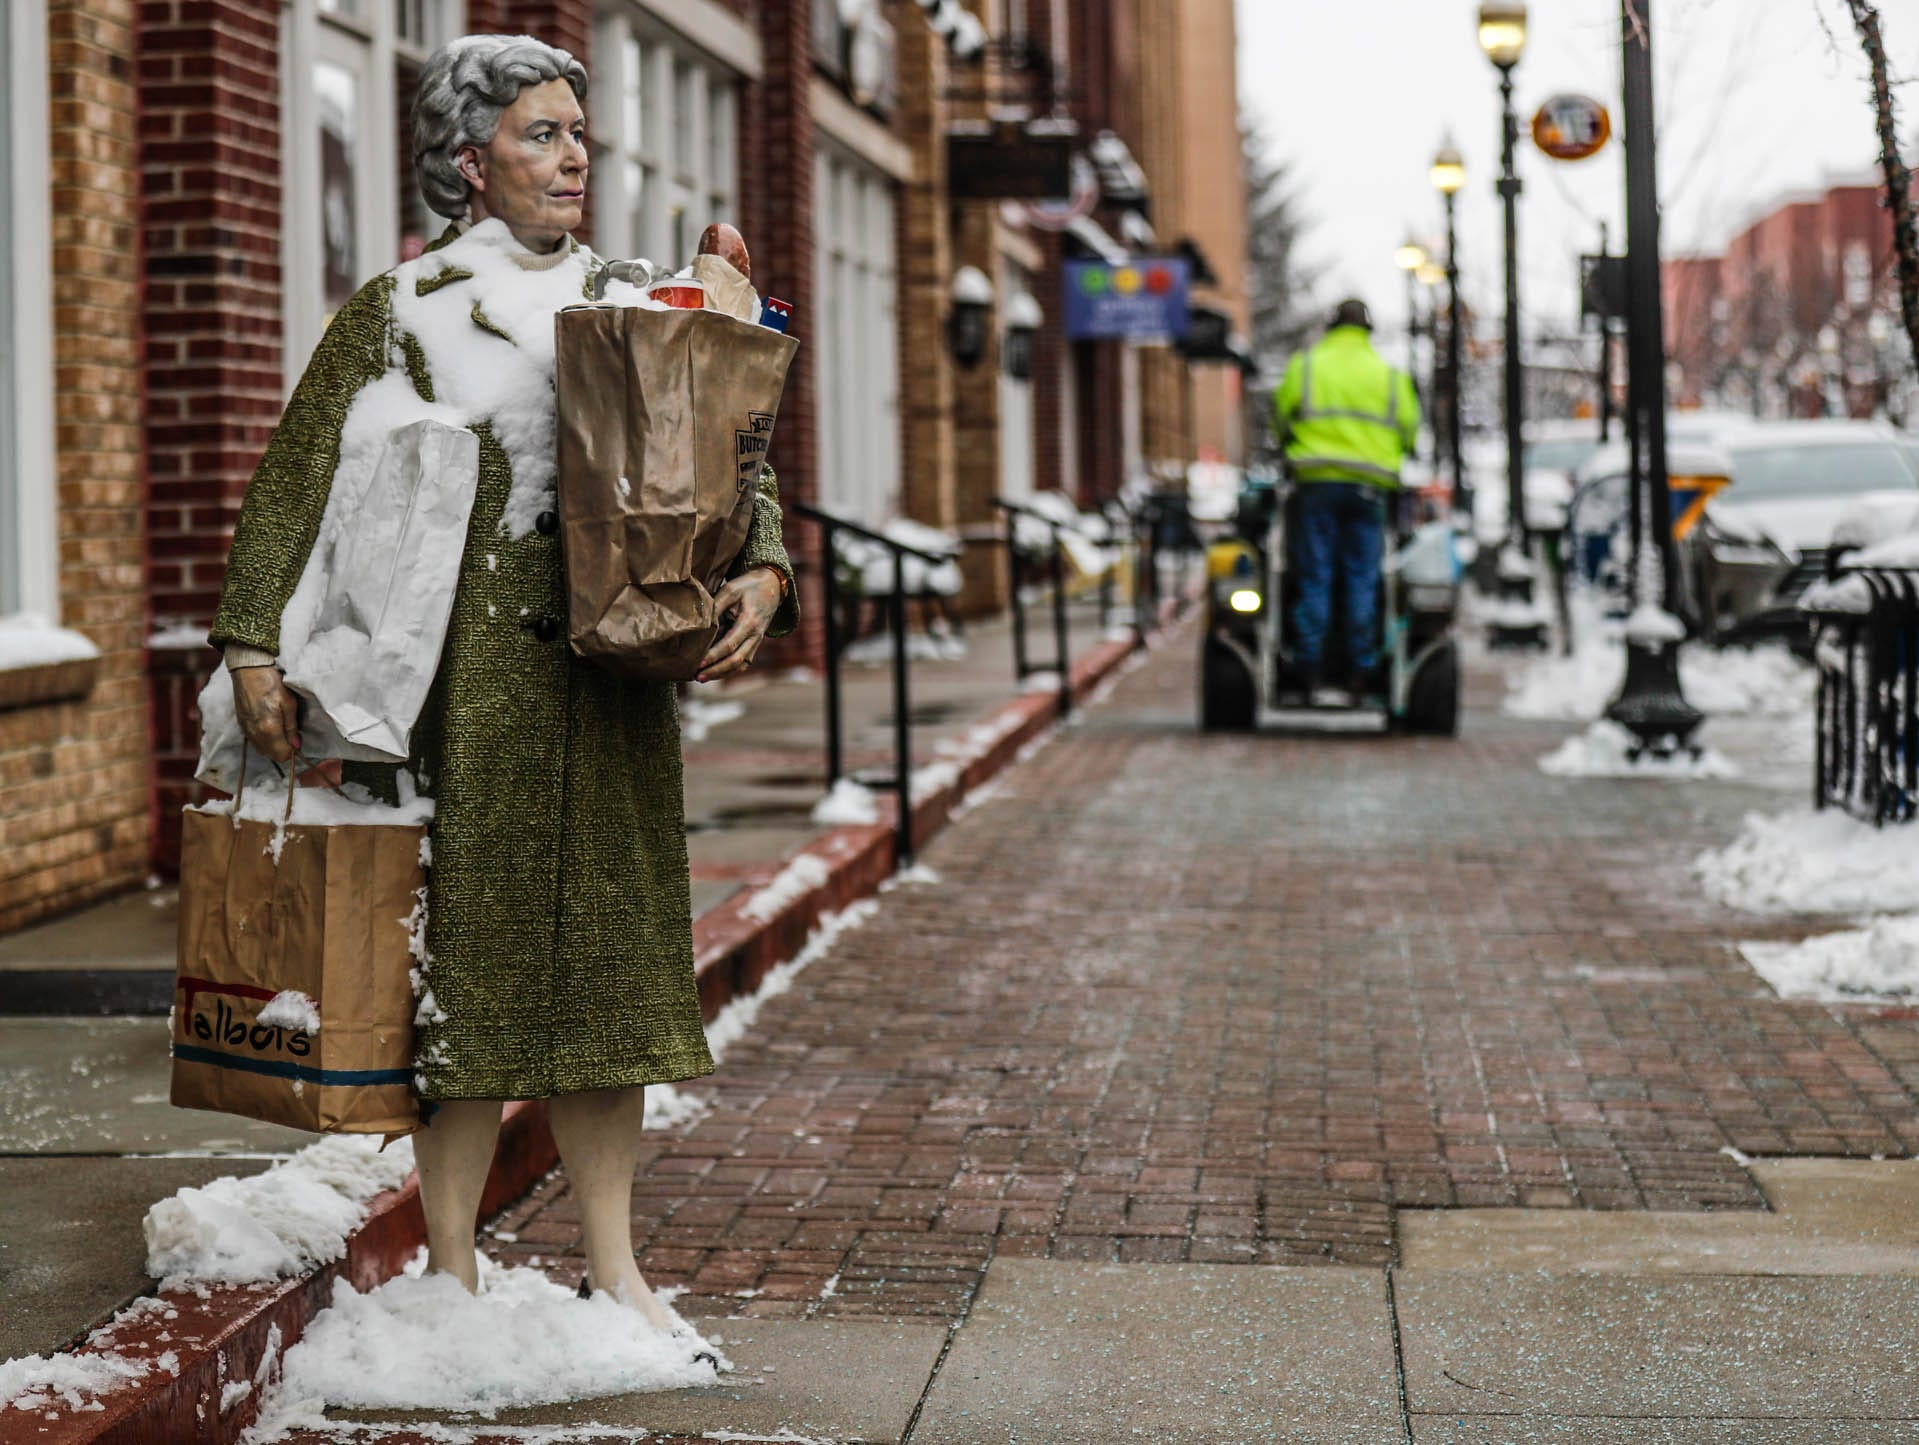 A sculpture by J. Seaward Johnson is dusted with snow as a unidentified man lays salt down on roads and sidewalks in downtown Carmel Ind. on Sunday, Jan. 13, 2019.